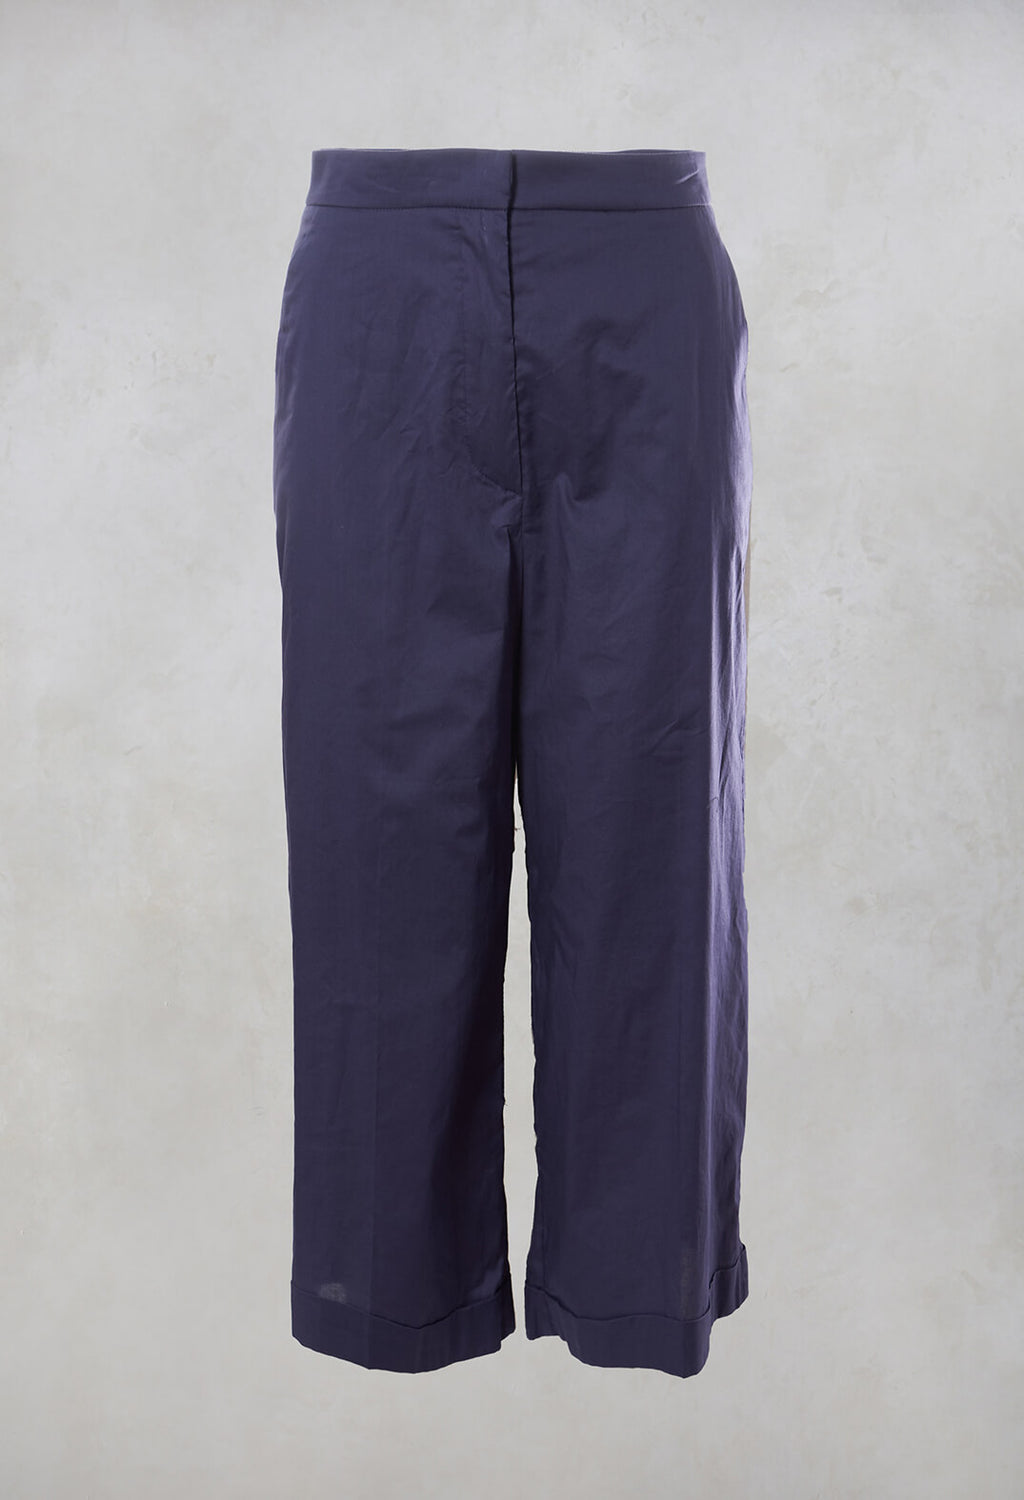 Wide Leg Culottes in Nebelung Purple